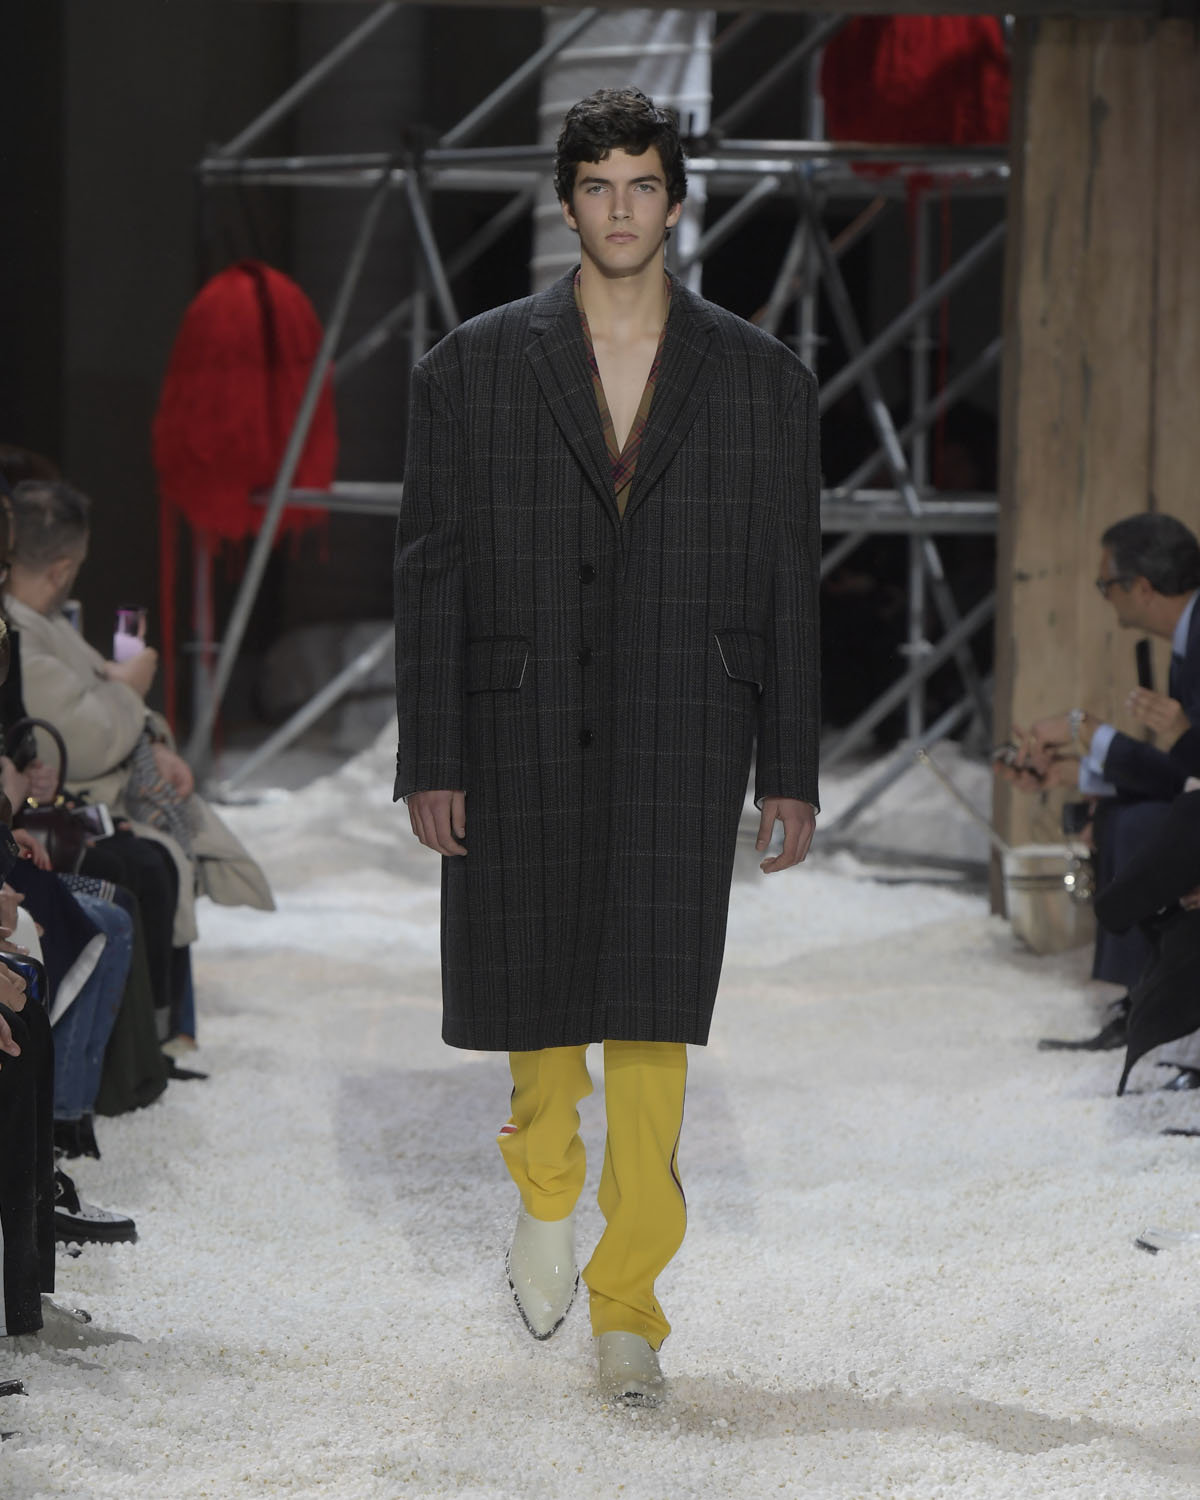 Discussion on this topic: 15 Of the Best Fall 2019 Fashion , 15-of-the-best-fall-2019-fashion/